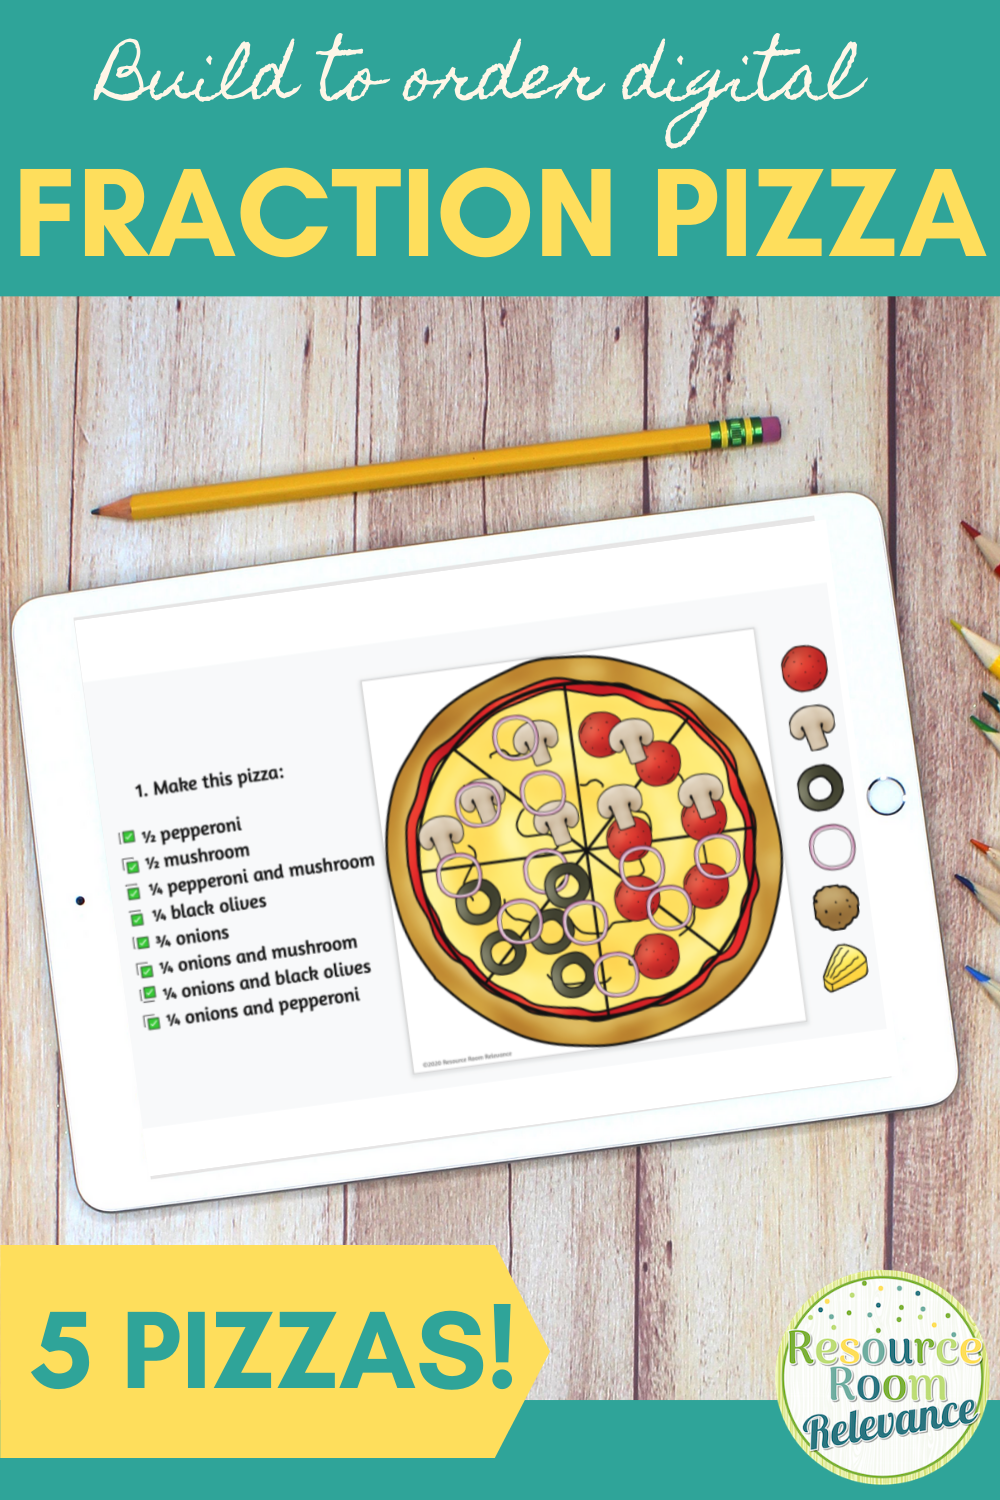 Fraction Pizza Digital Resource Fractions Math Graphic Organizers Digital Resources [ 1500 x 1000 Pixel ]